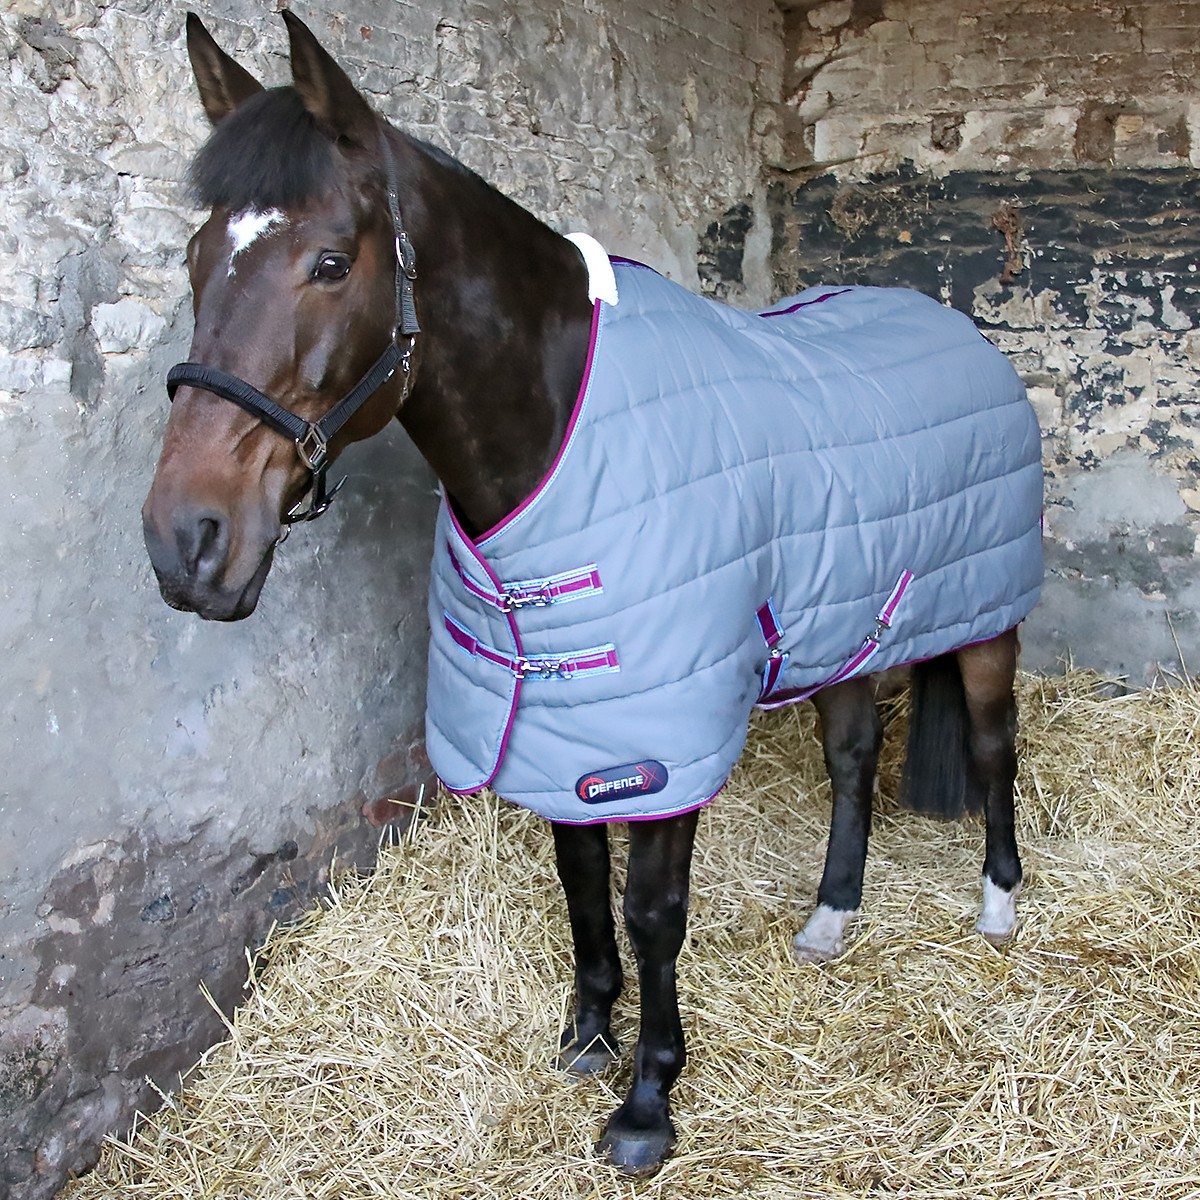 Hy DefenceX System 300g Heavyweight Stable Rug